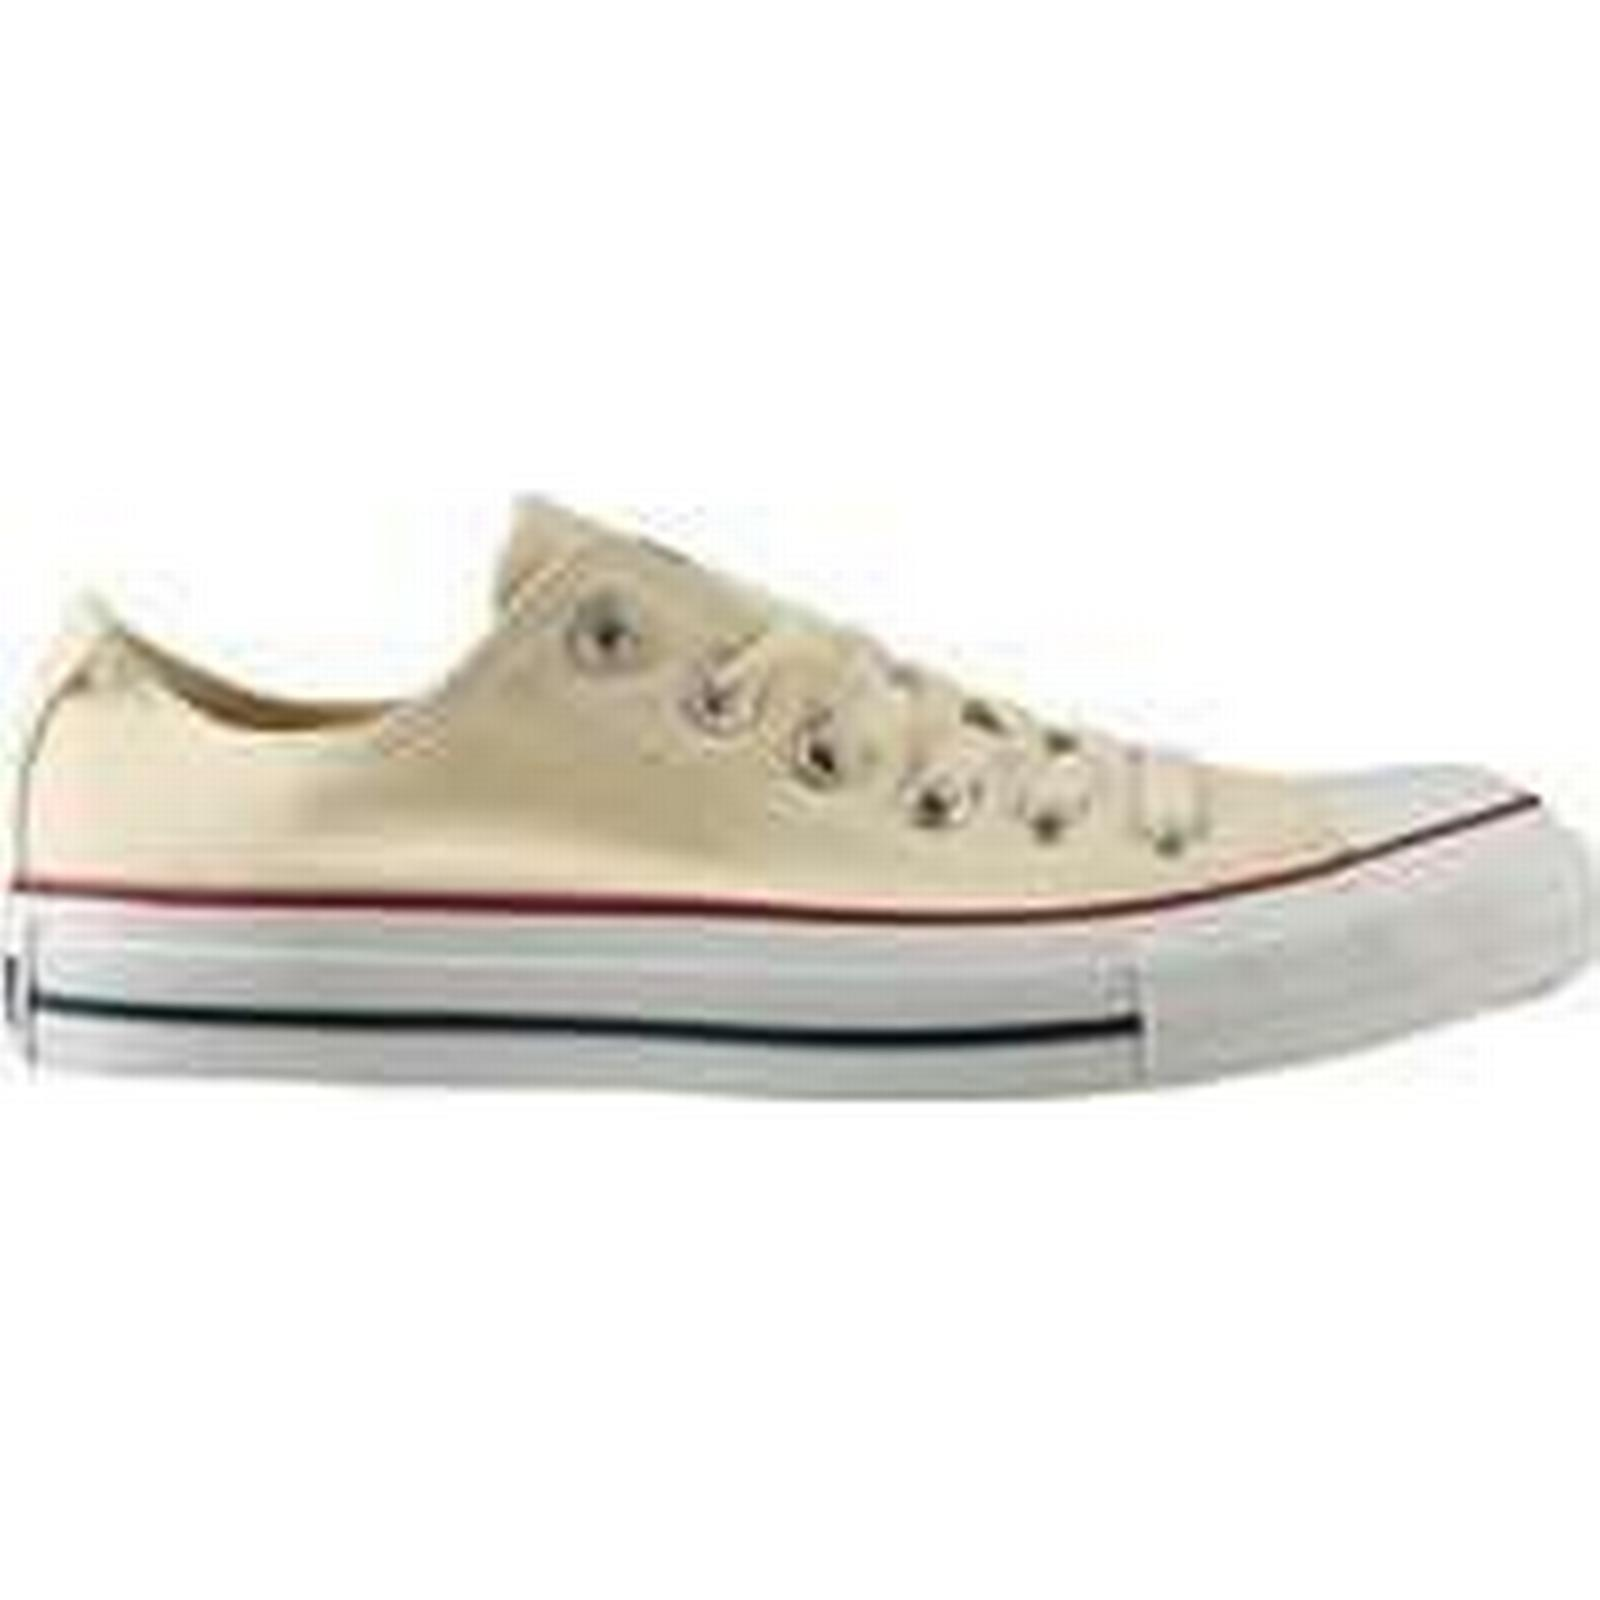 Spartoo.co.uk Converse Chuck Taylor All in Star women's Shoes (Trainers) in All Beige cf7144